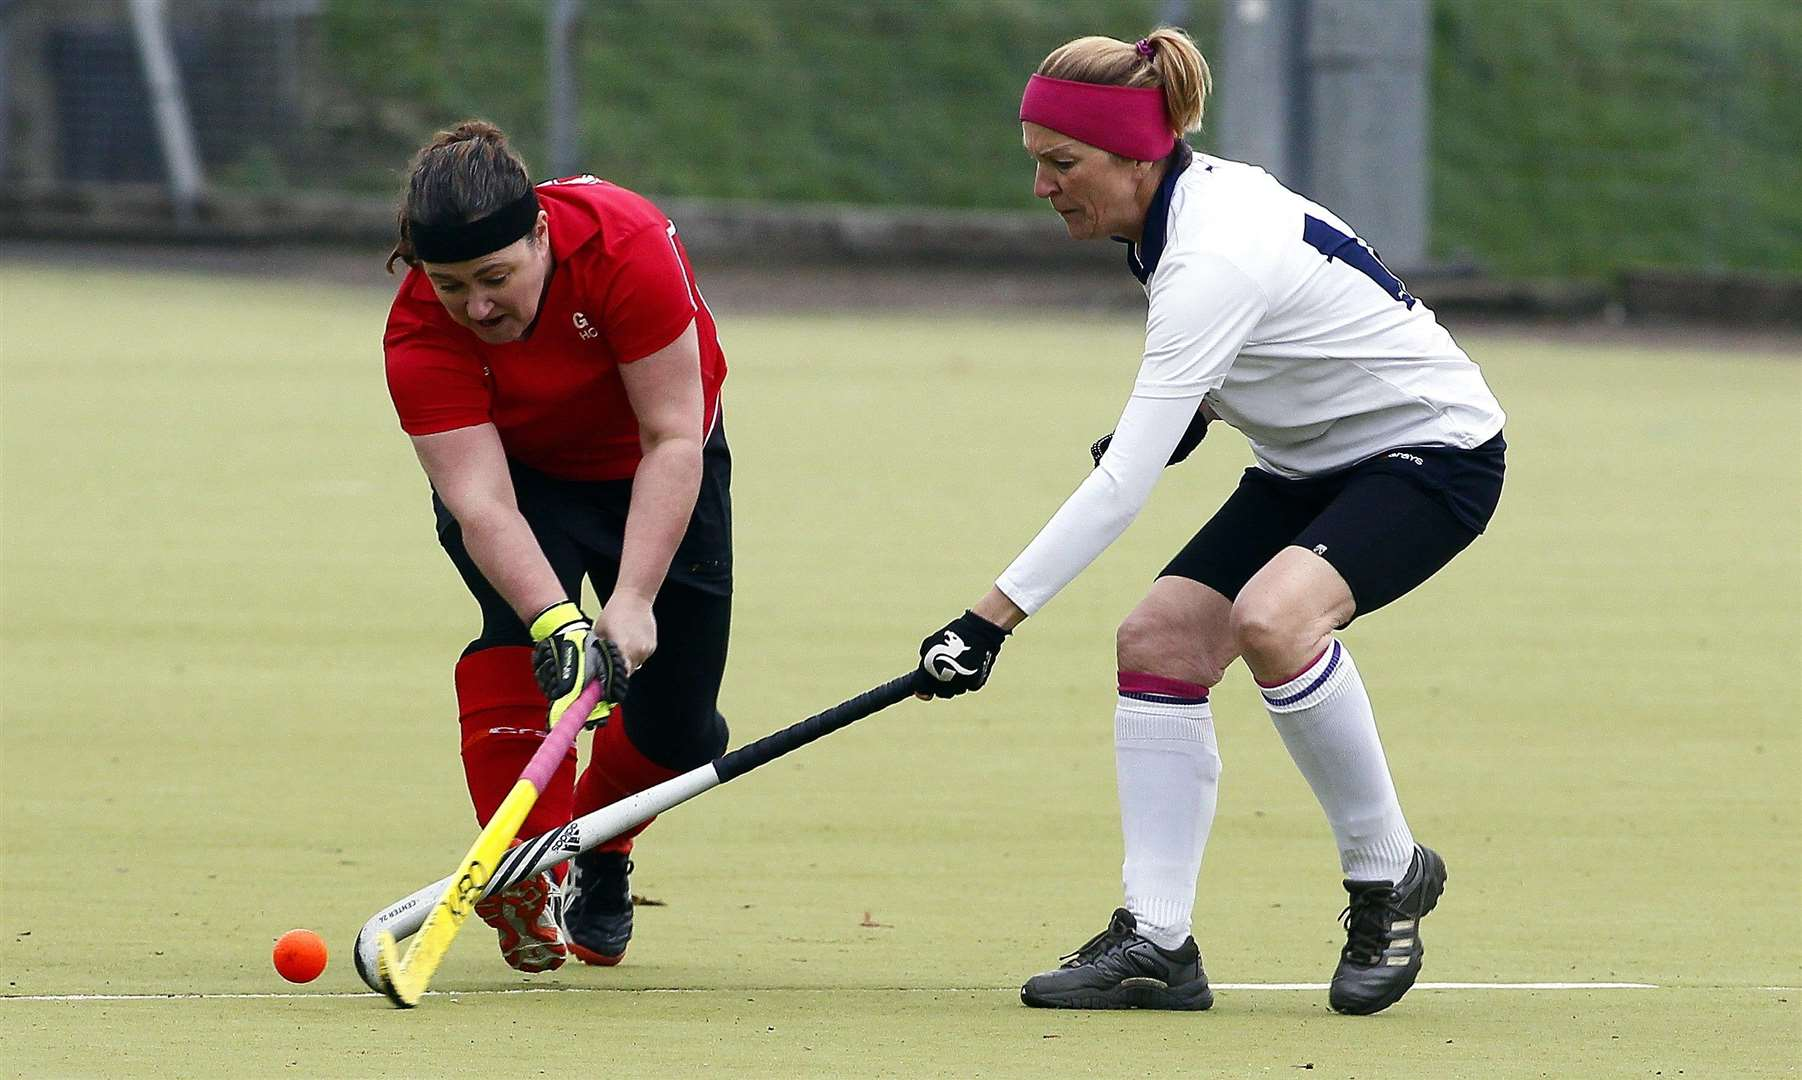 Hopes are high that hockey will continue to be played in Gravesend Picture: Sean Aidan